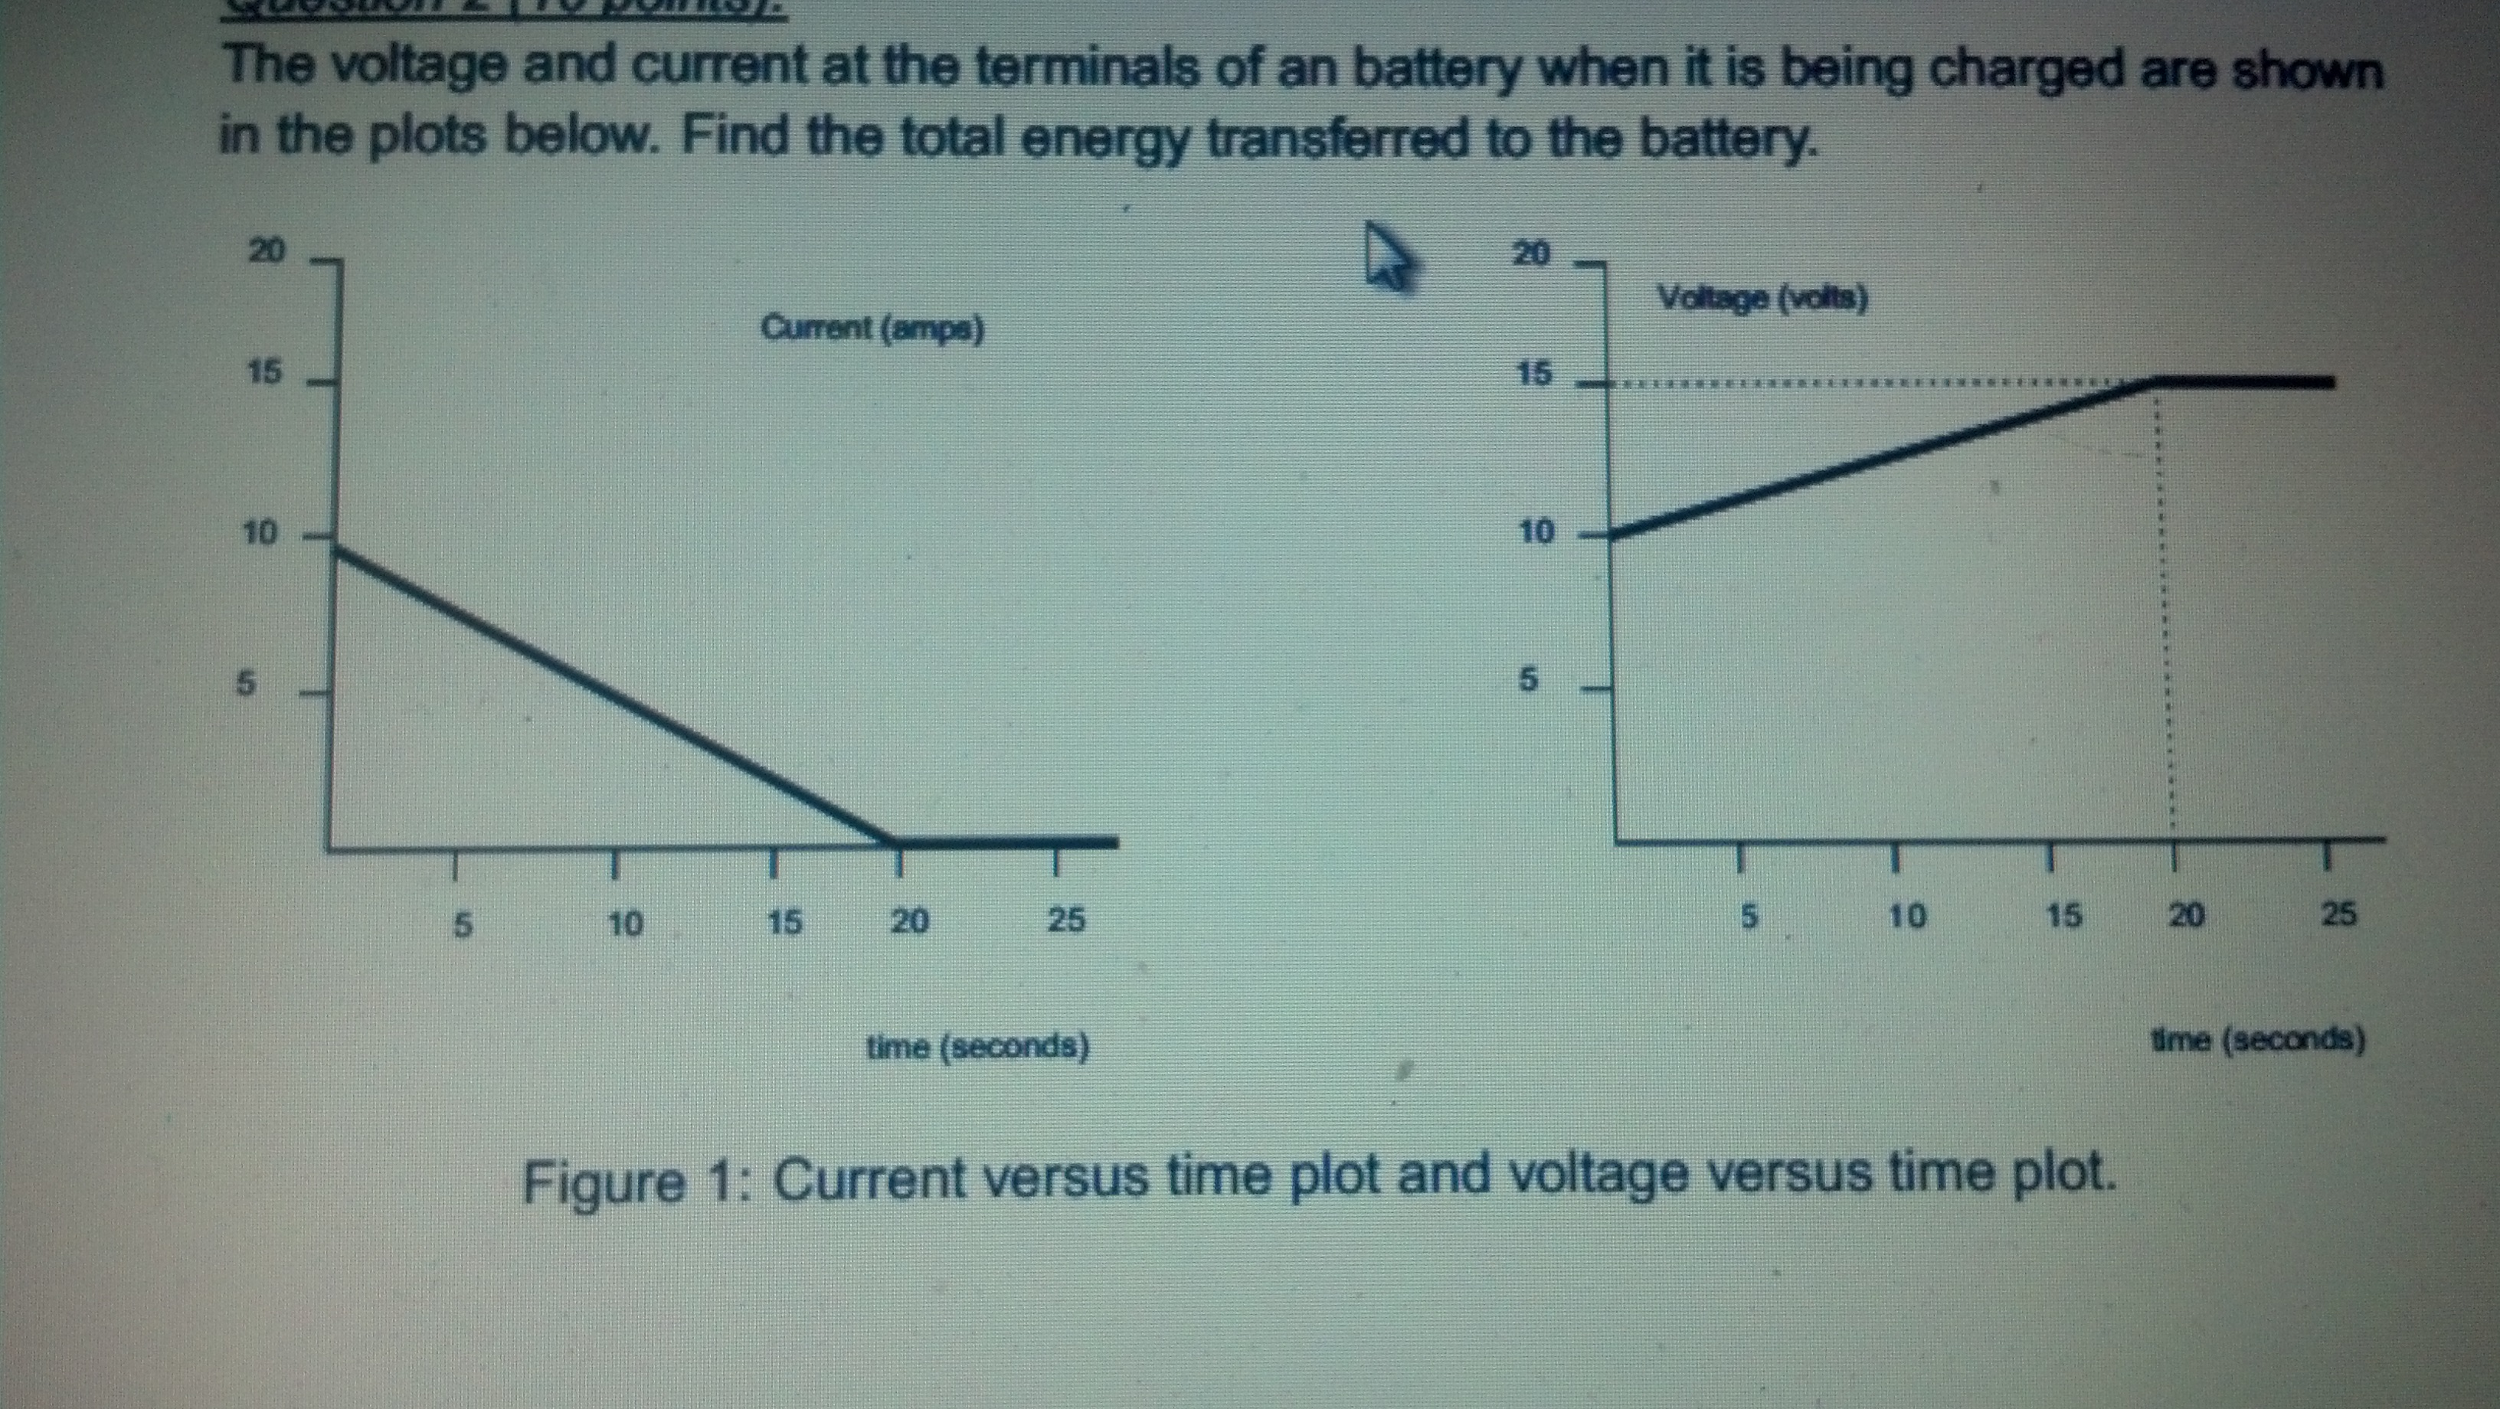 The voltage and current at the terminals of an bat